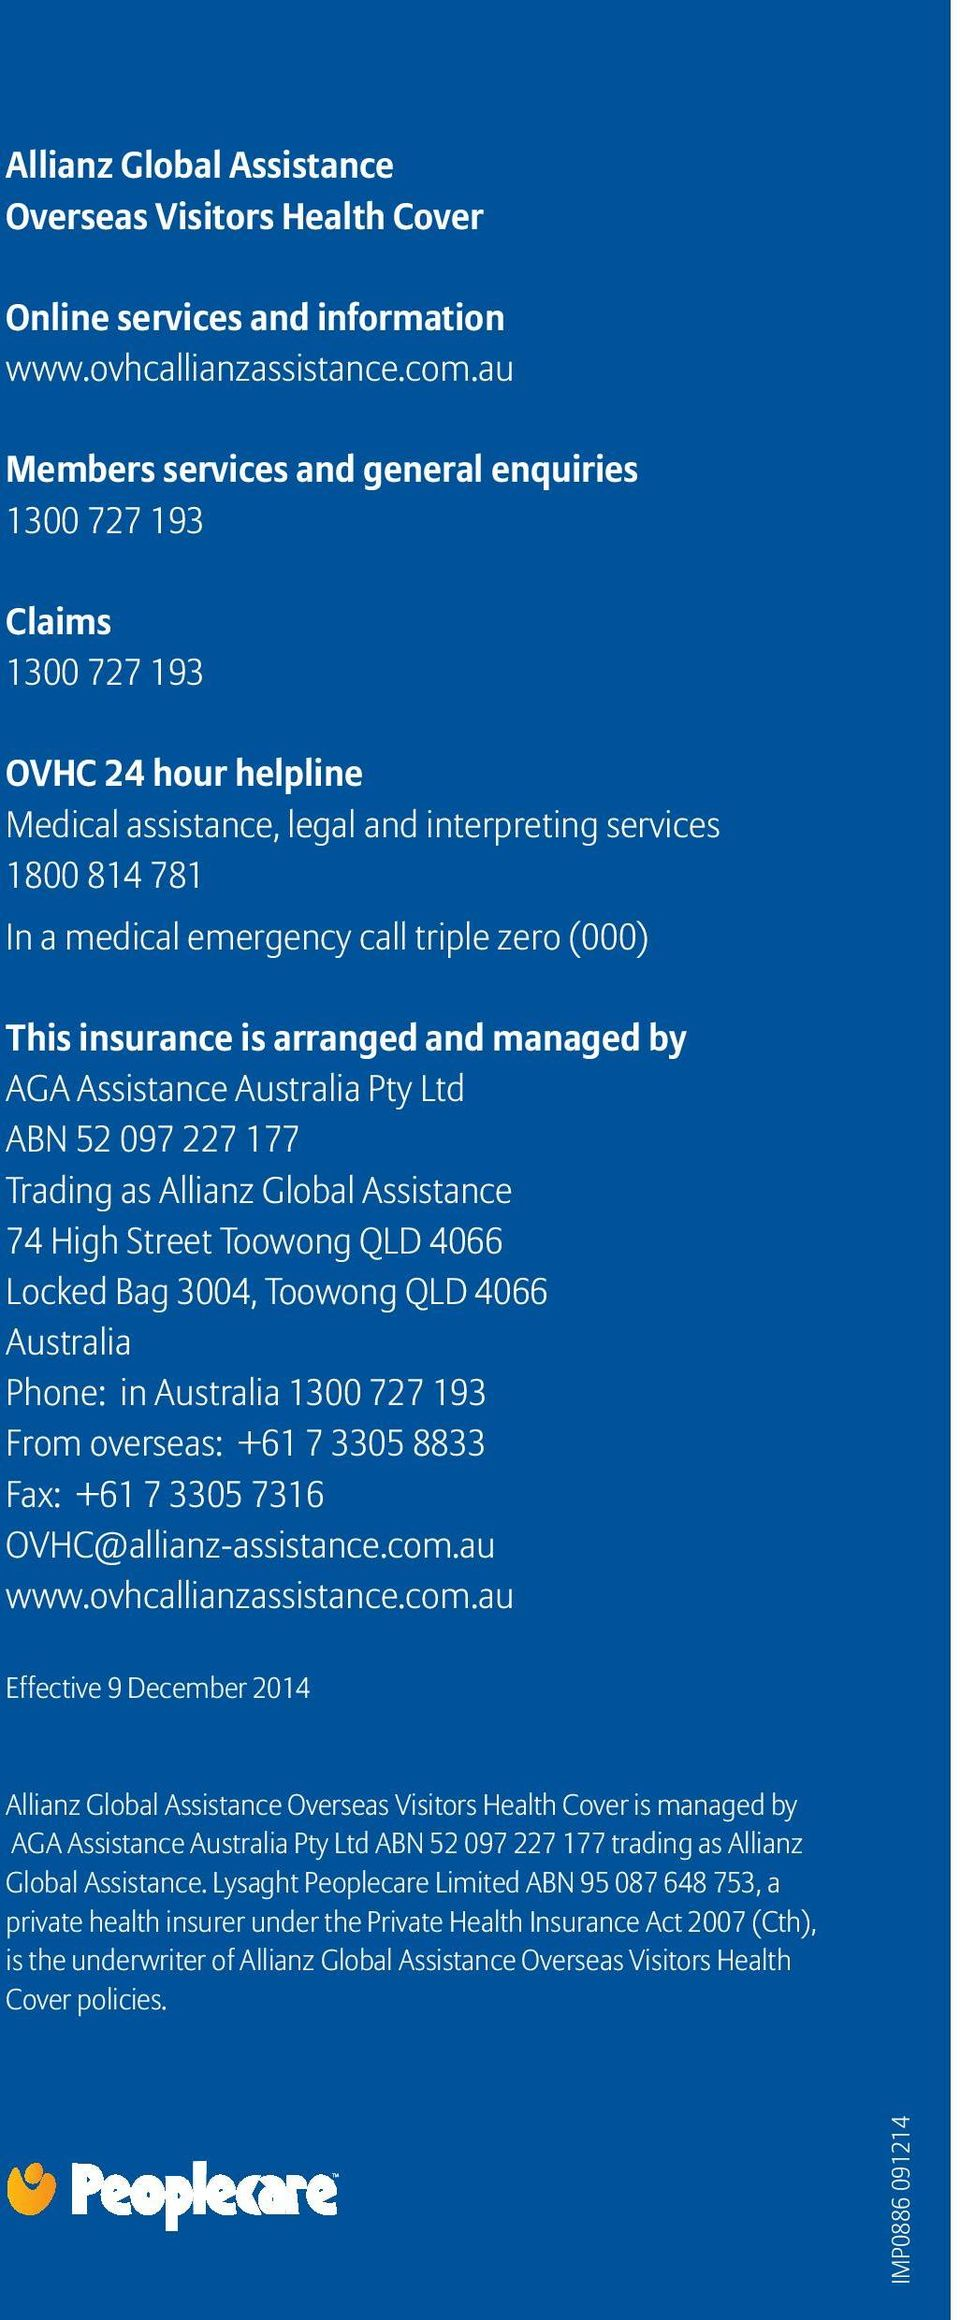 zero (000) This insurance is arranged and managed by AGA Assistance Australia Pty Ltd ABN 52 097 227 177 Trading as Allianz Global Assistance 74 High Street Toowong QLD 4066 Locked Bag 3004, Toowong